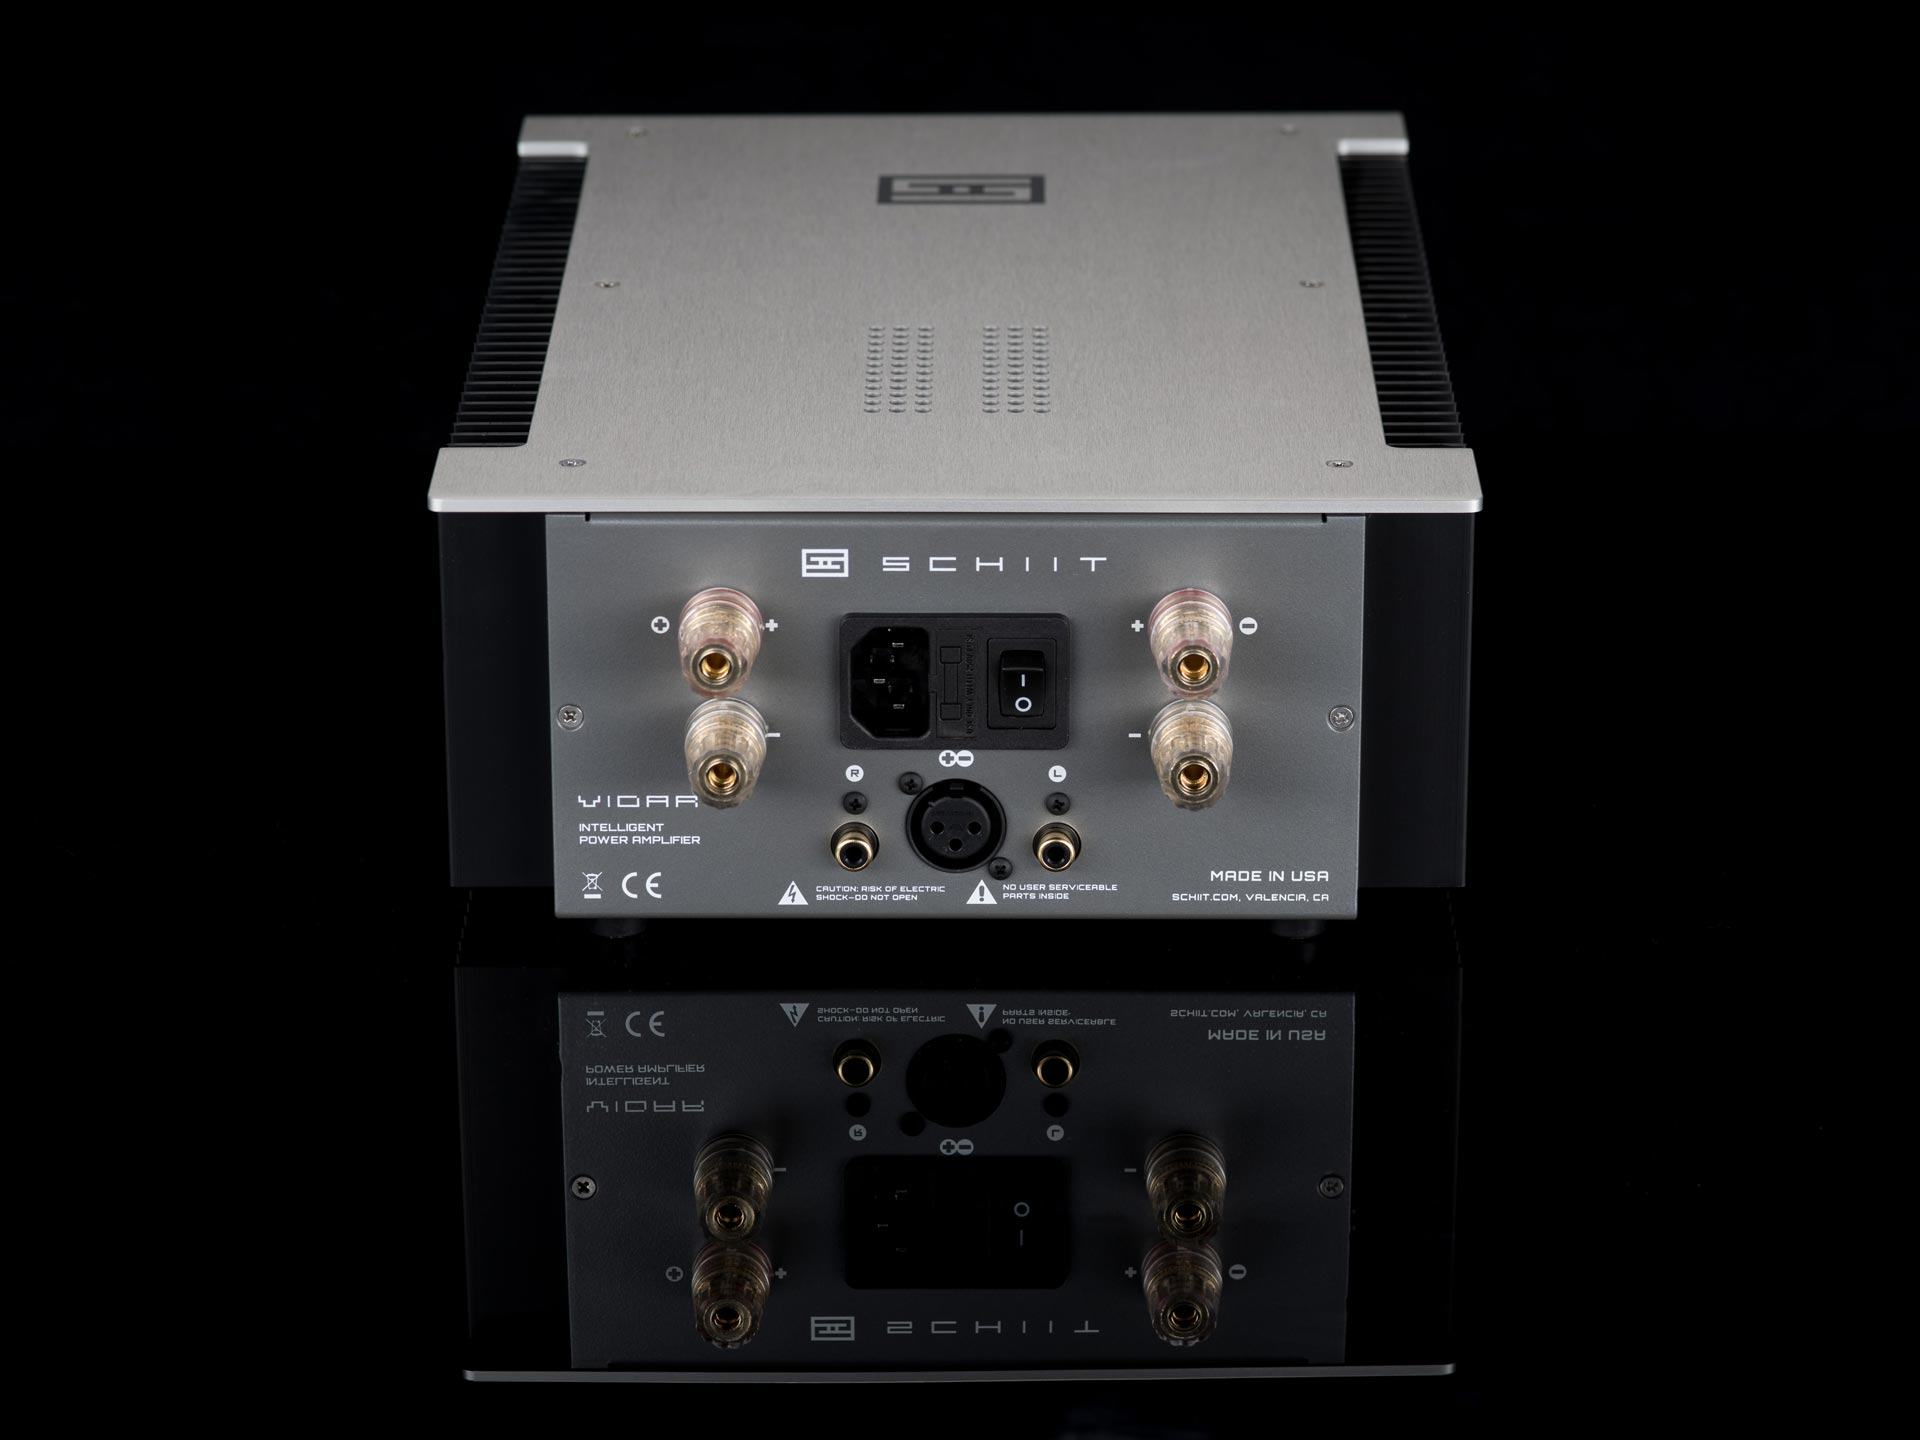 Highfidelity And Pure Sine Wave Inverter 1 Based On Class D Amplifier The Schiit Vidar Intelligent Power Above Referenced Setup Was Delightful From A Footprint Standpoint Its Winner There Is Low Chassis Count Two For Electronics